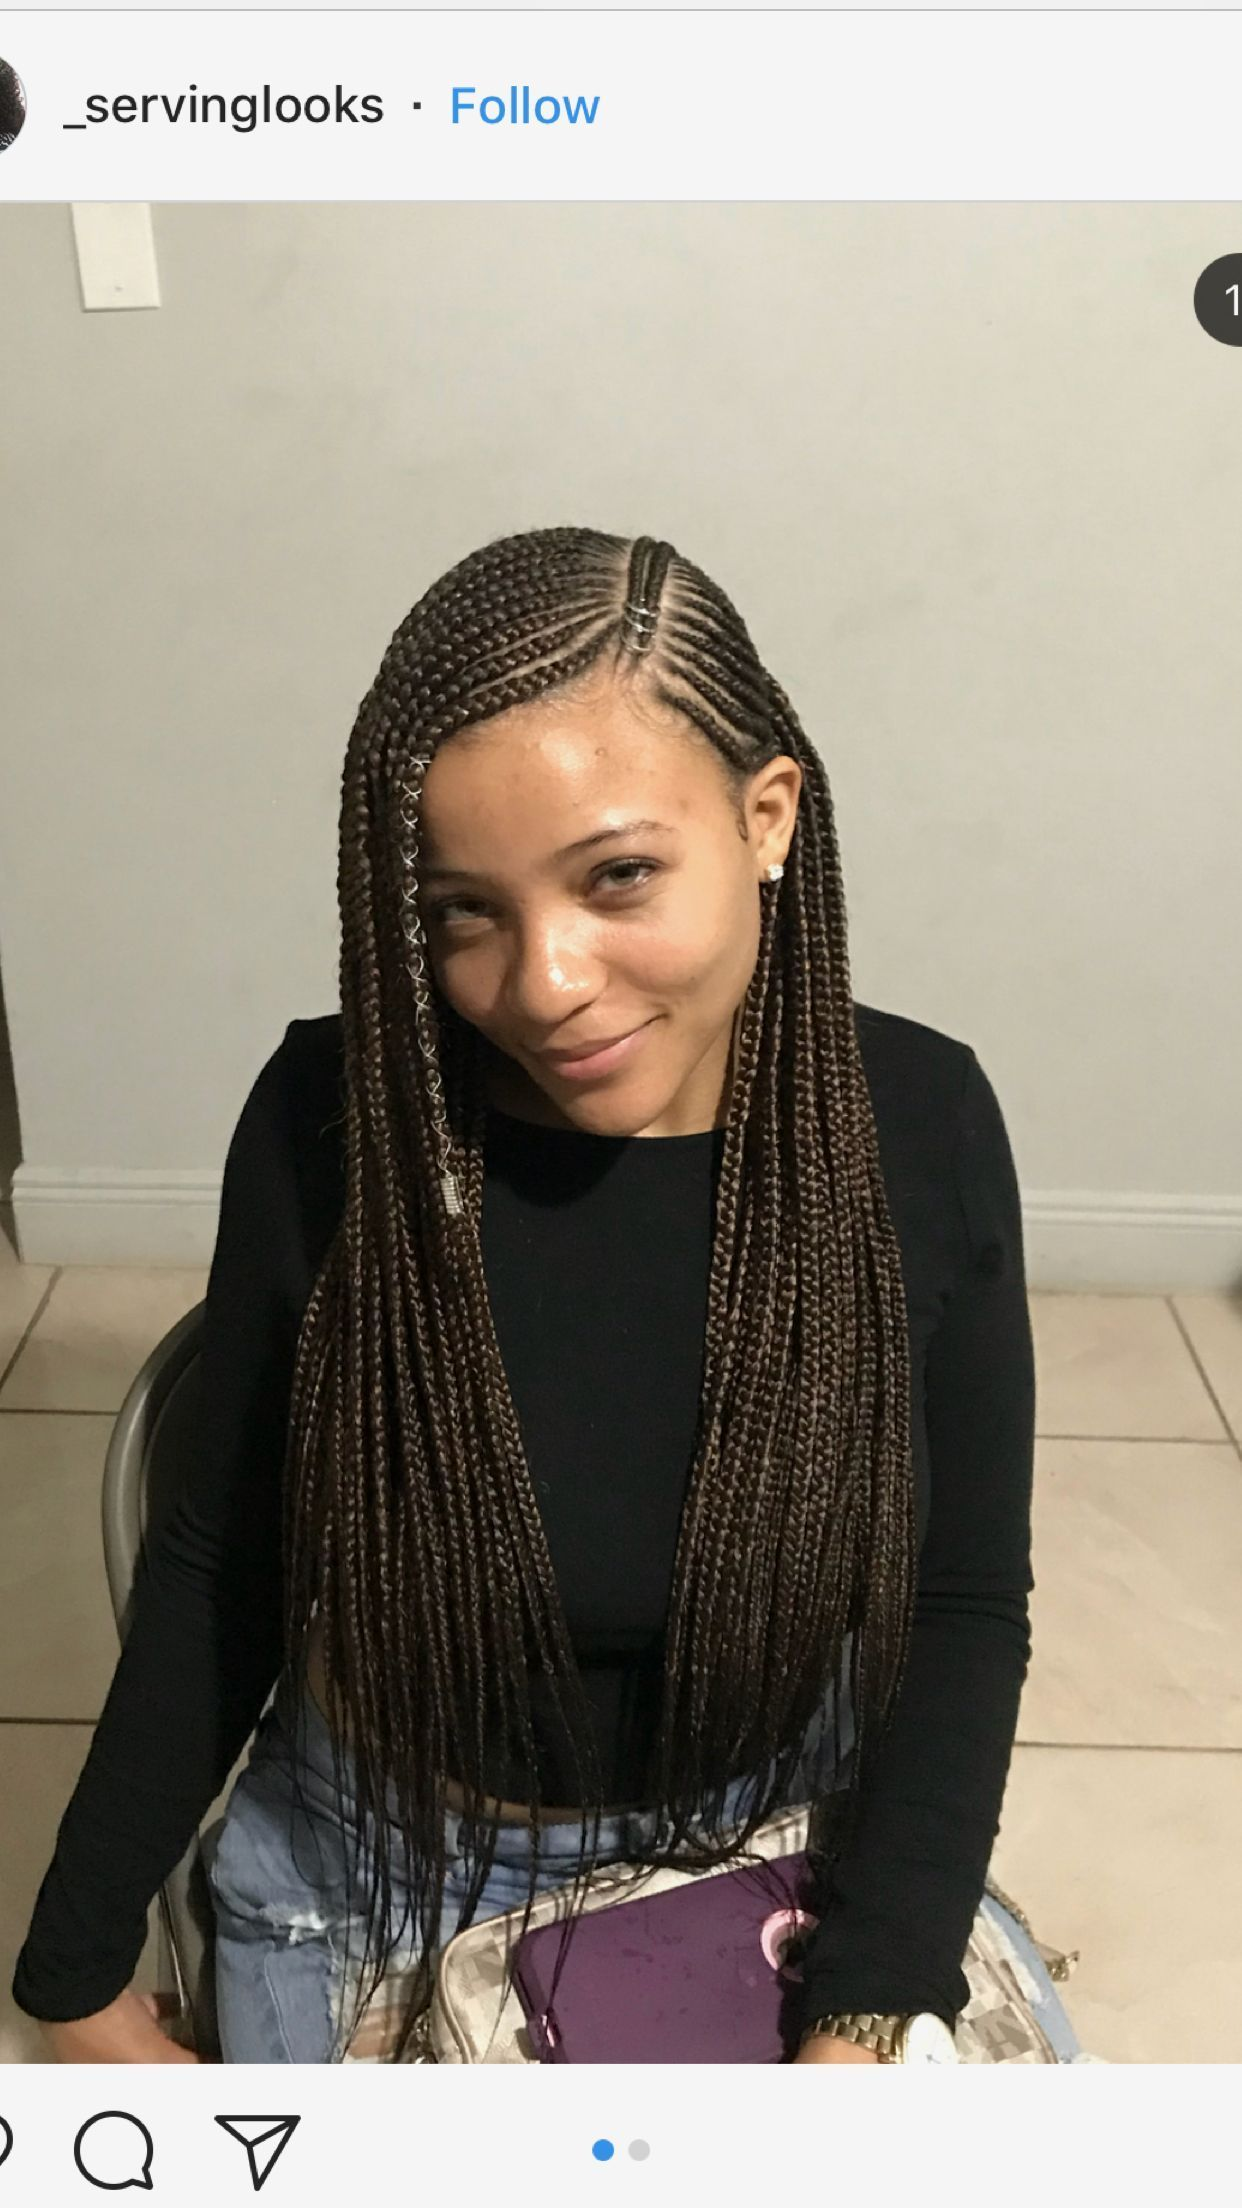 africanhairbraiding in 2019 Braided hairstyles, African